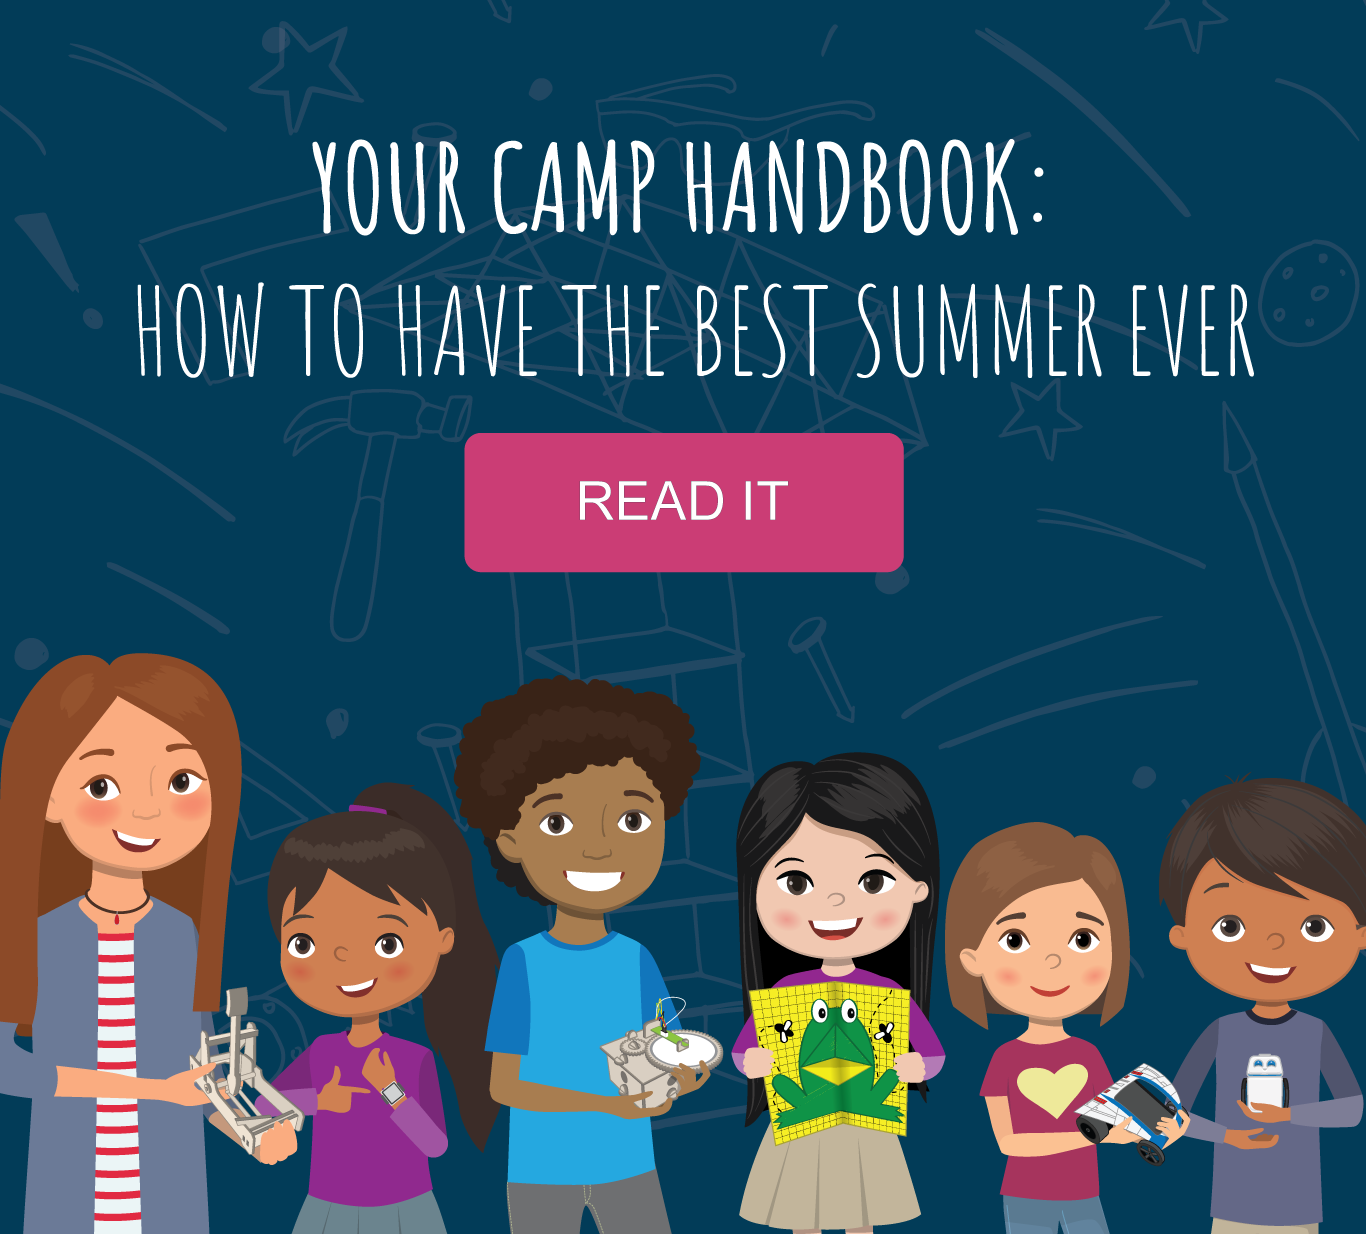 YOUR CAMP HANDBOOK: How to Have the Best Summer Ever